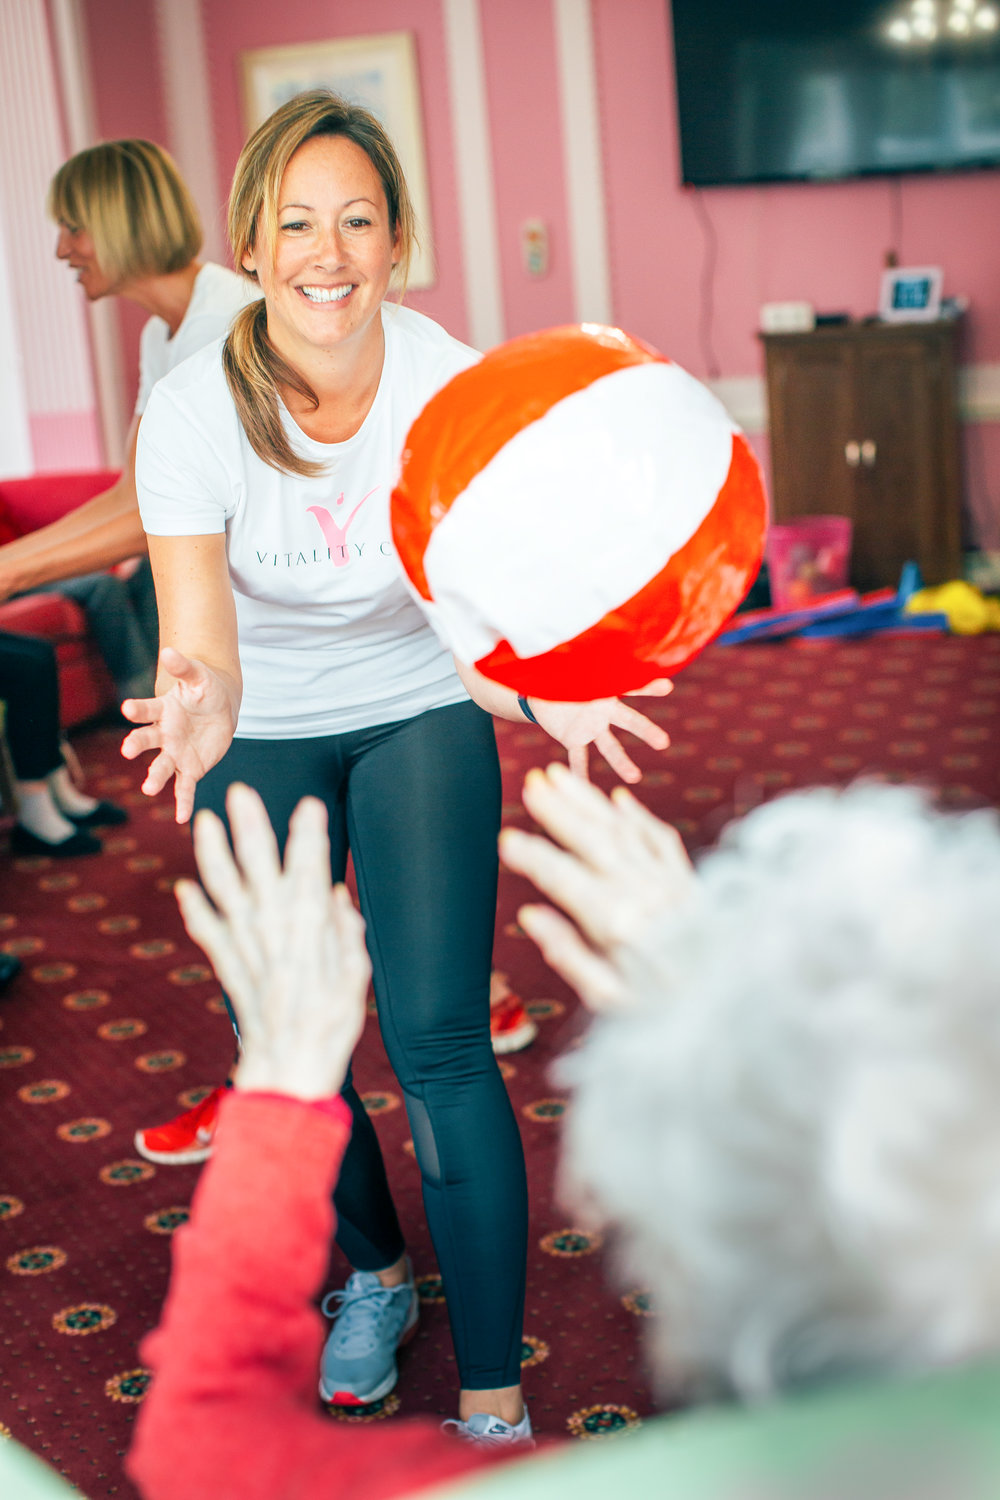 Fitness & Fun Mobility - Discover how we can enrich your care home or centre's activity programme here…